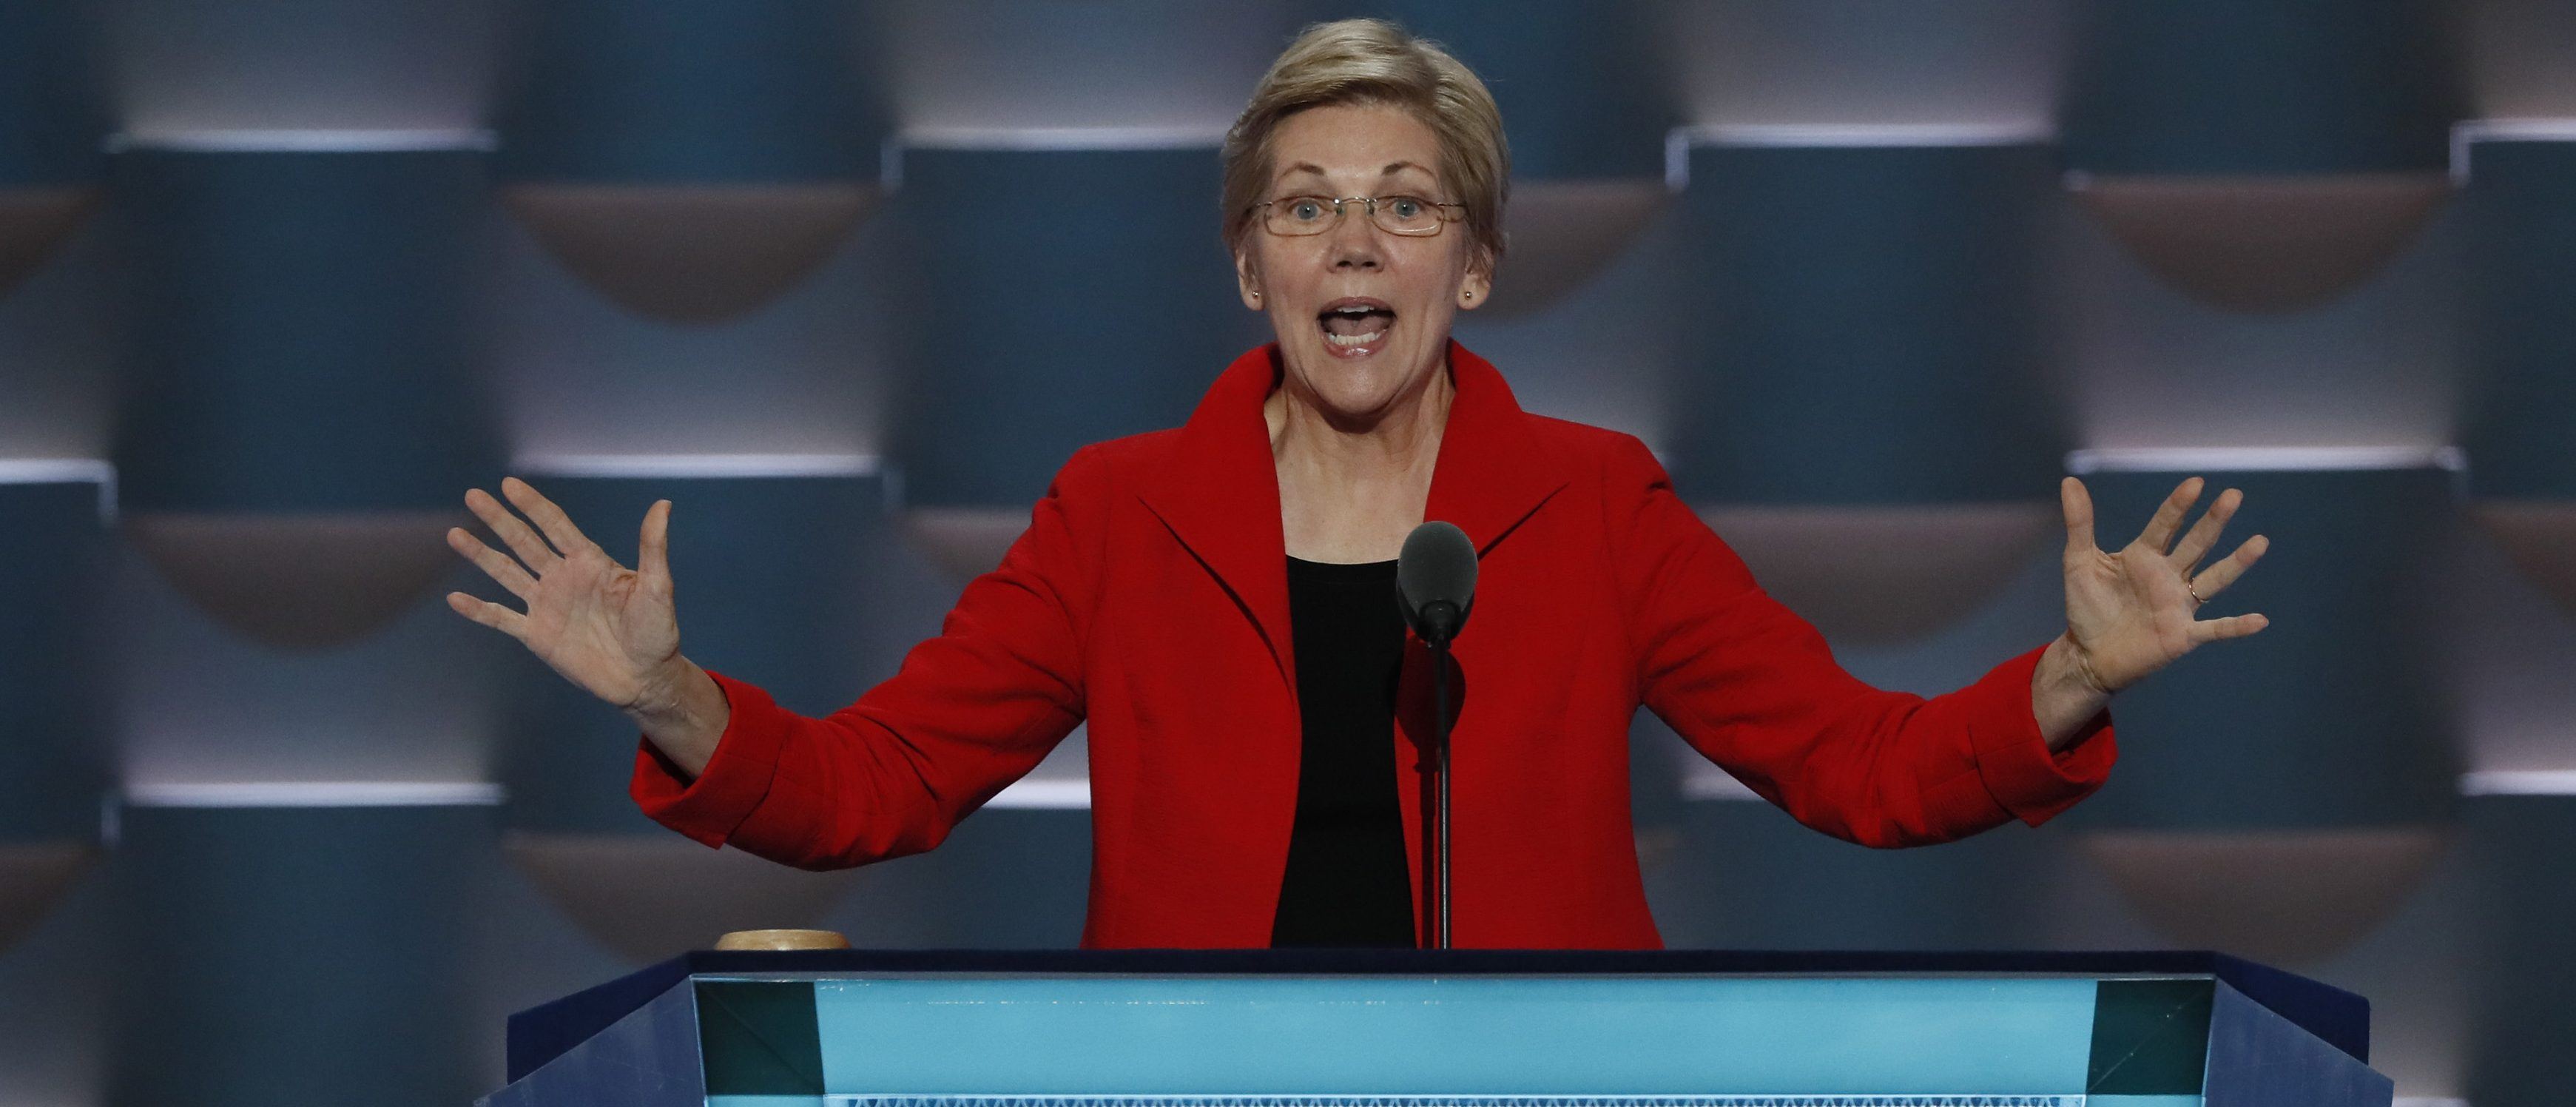 U.S. Senator Elizabeth Warren (D-MA) speaks during the first session at the Democratic National Convention in Philadelphia, Pennsylvania, U.S. July 25, 2016.